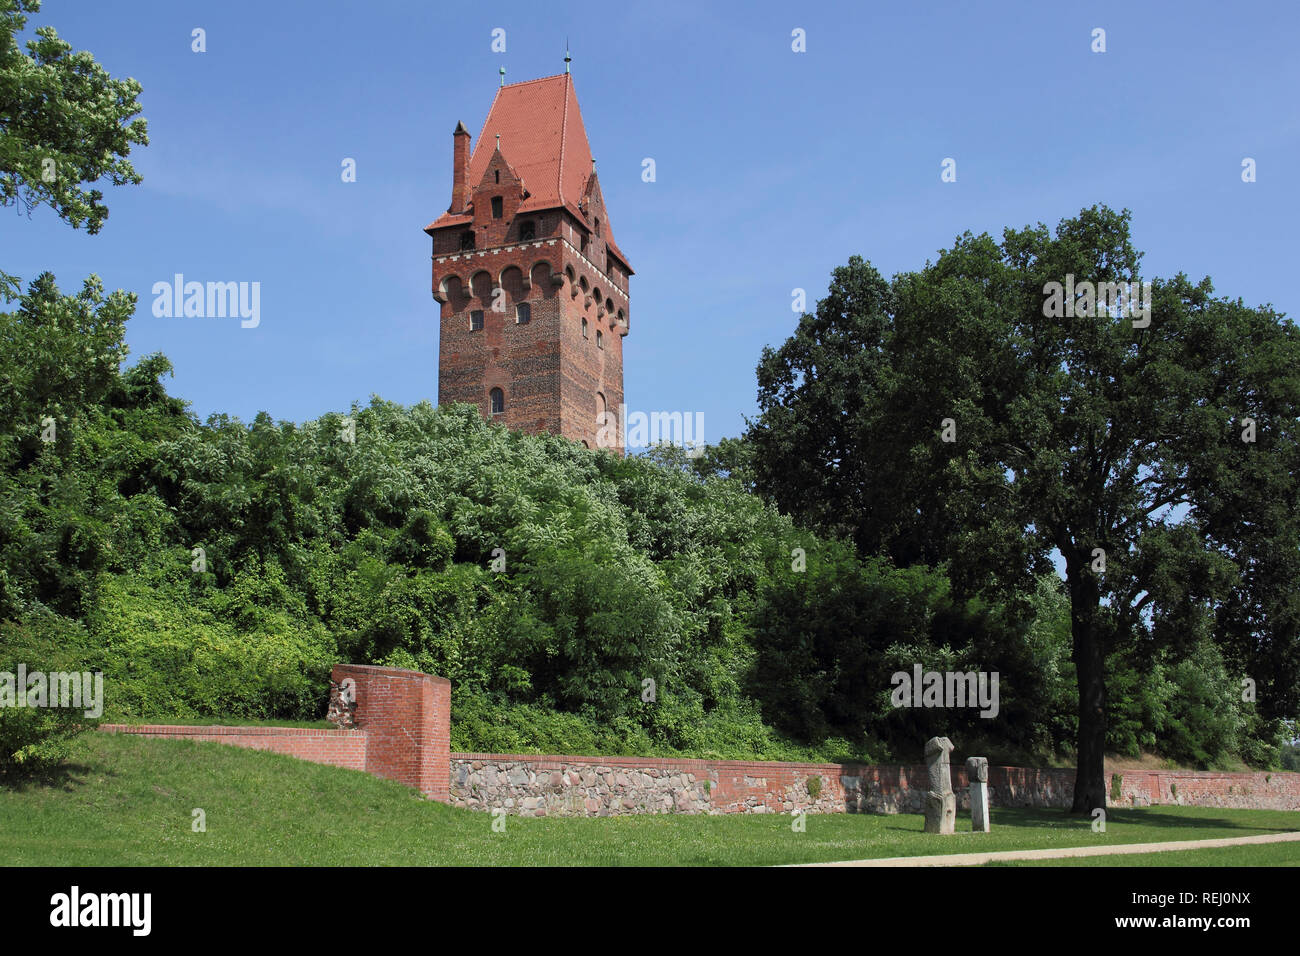 Castle complex and the Lookout tower in Tangermünde, Germany Stock Photo